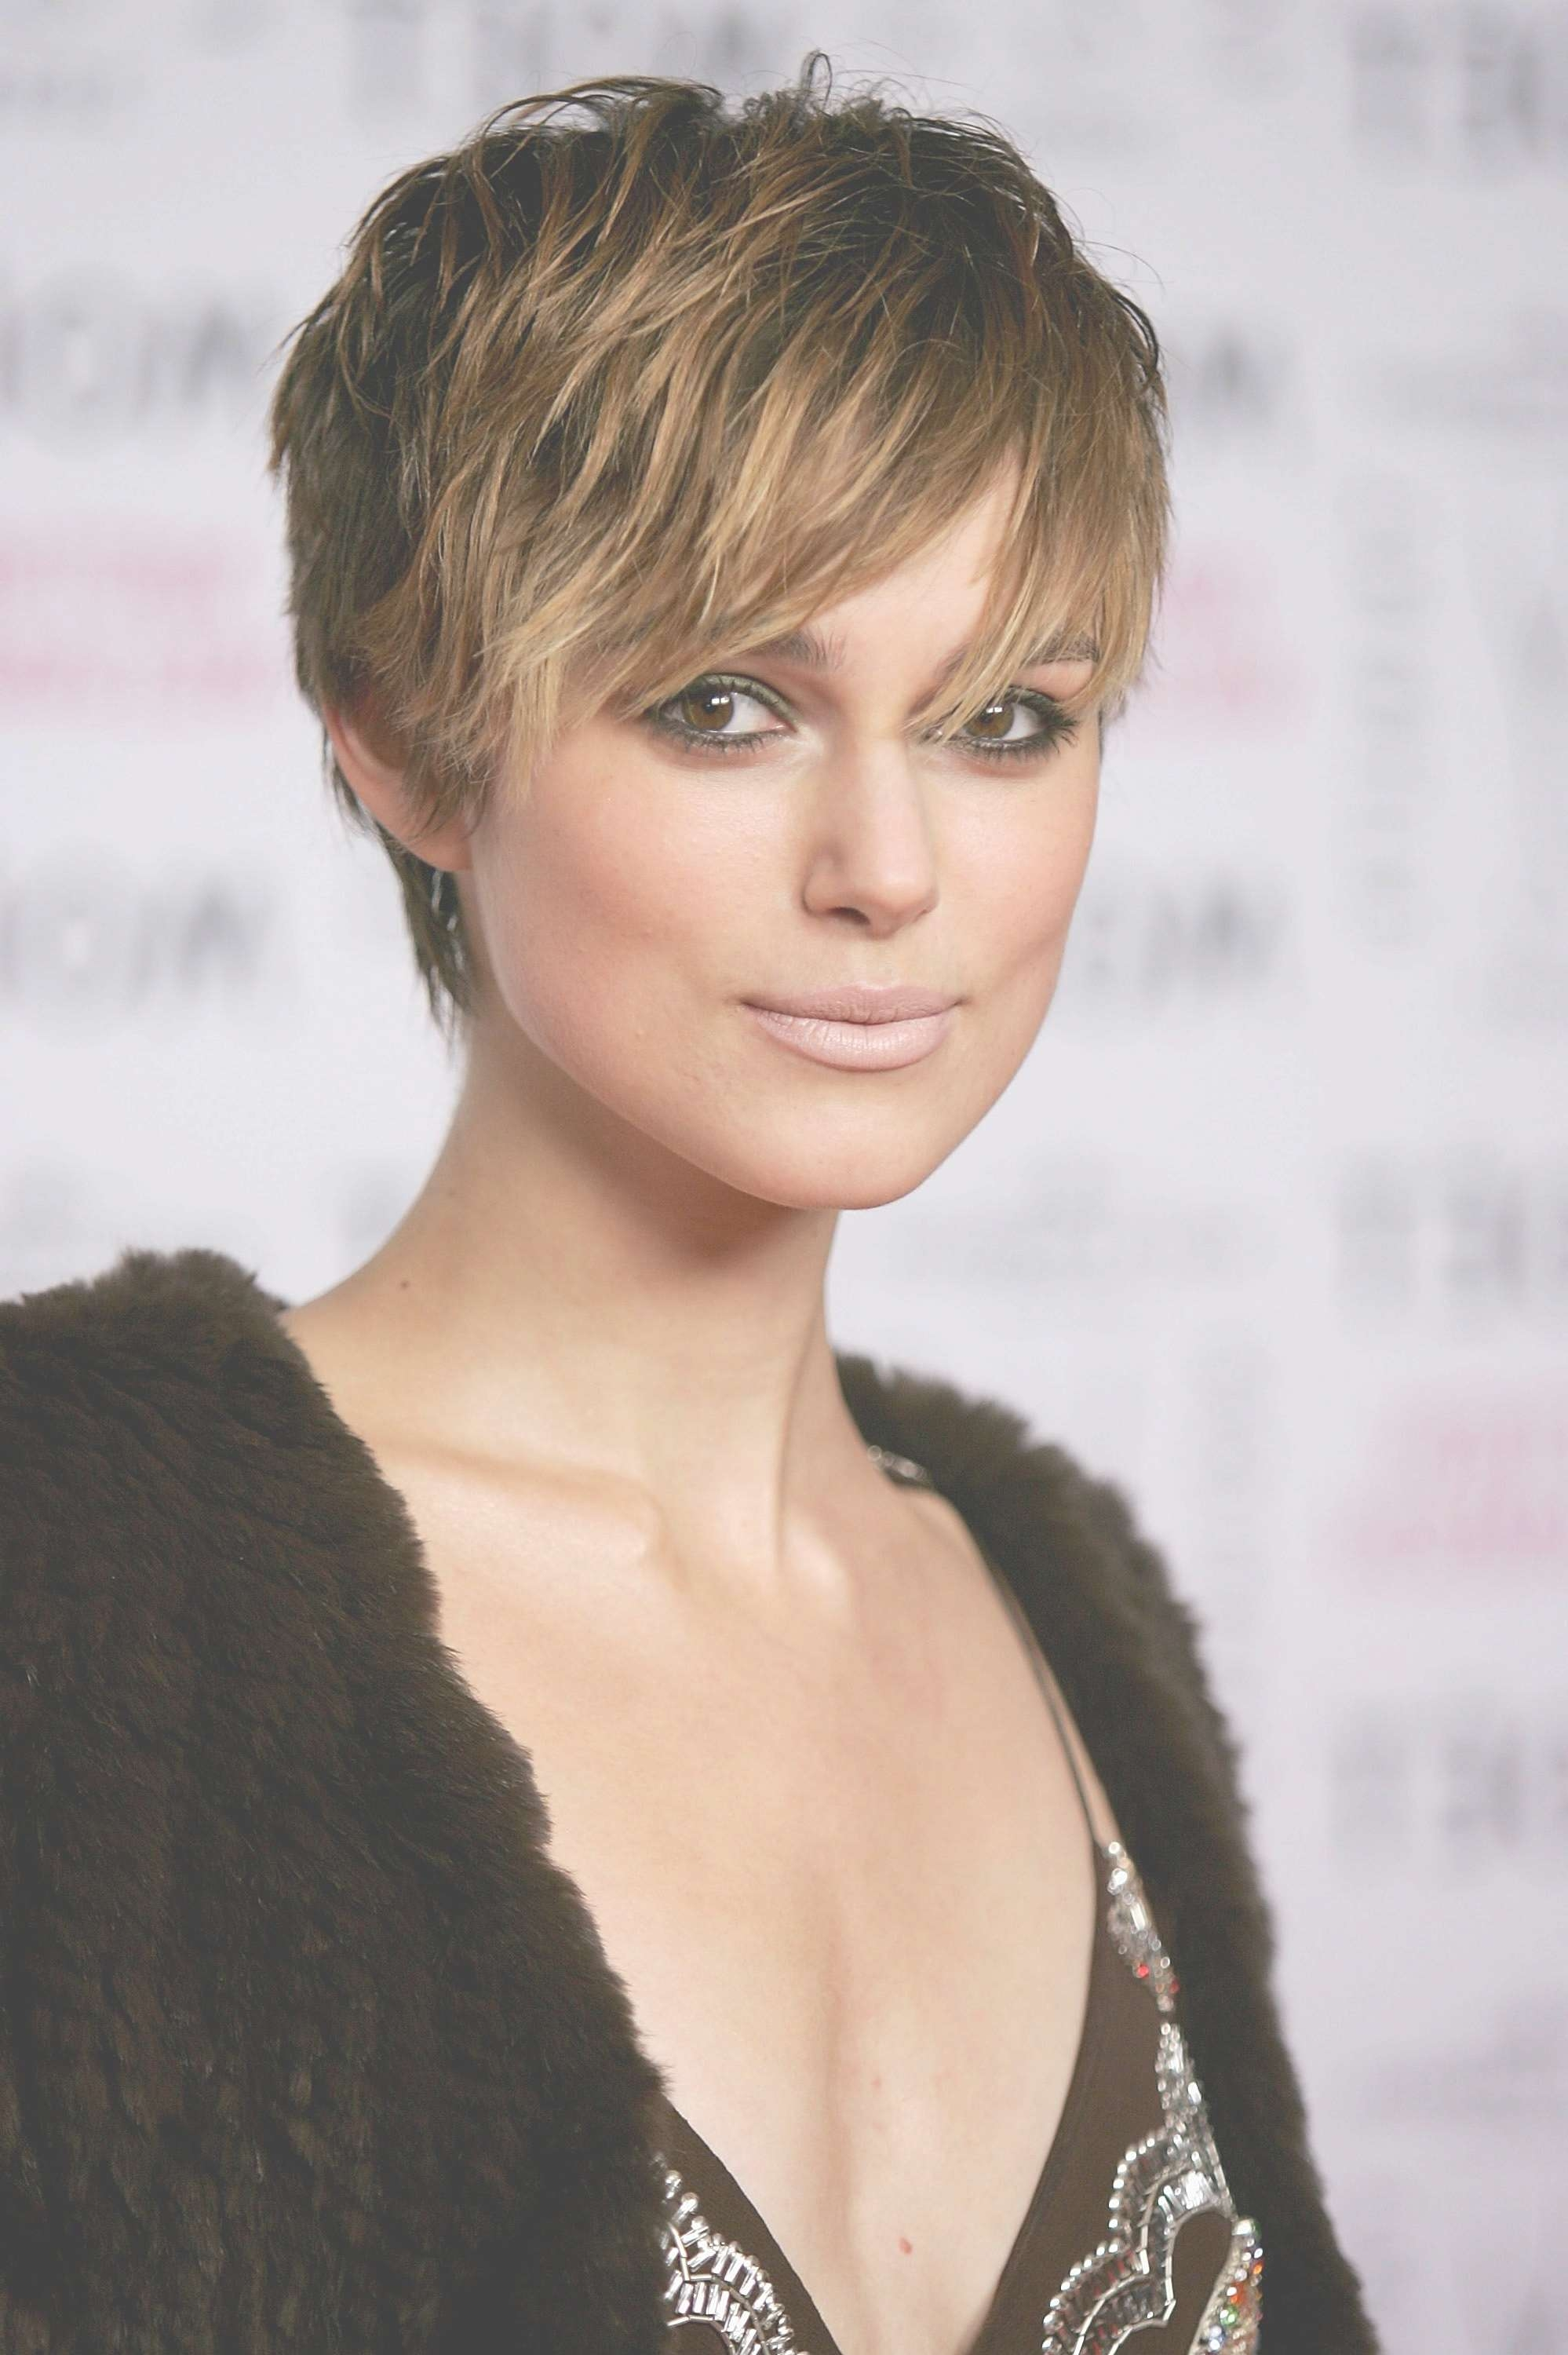 53 Best Pixie Cut Hairstyle Ideas 2018 – Cute Celebrity Pixie Haircuts For Most Up To Date Actresses With Pixie Hairstyles (View 6 of 15)